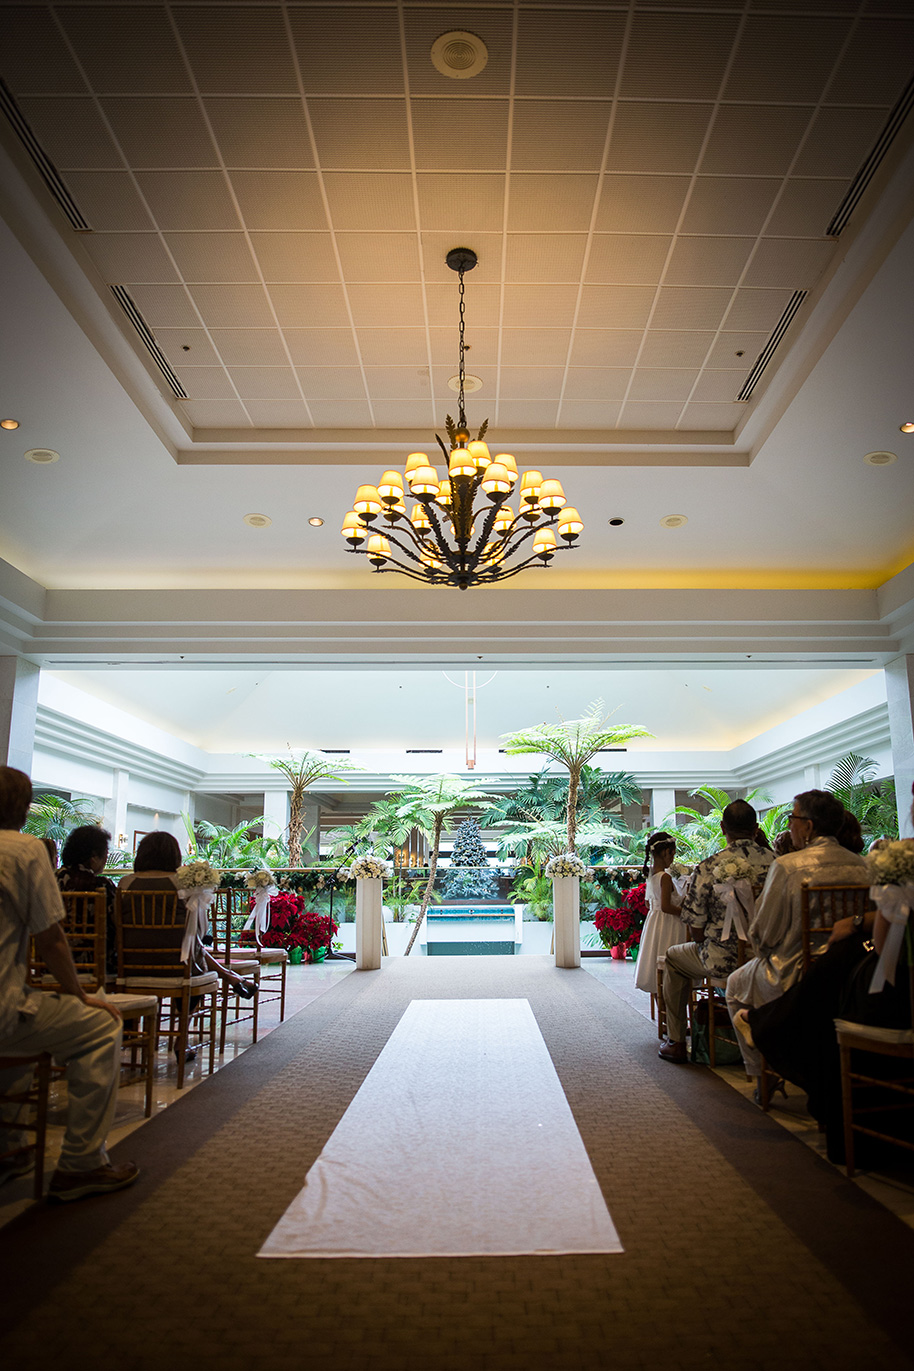 Koolau-Ballrooms-Wedding-041116-13.jpg